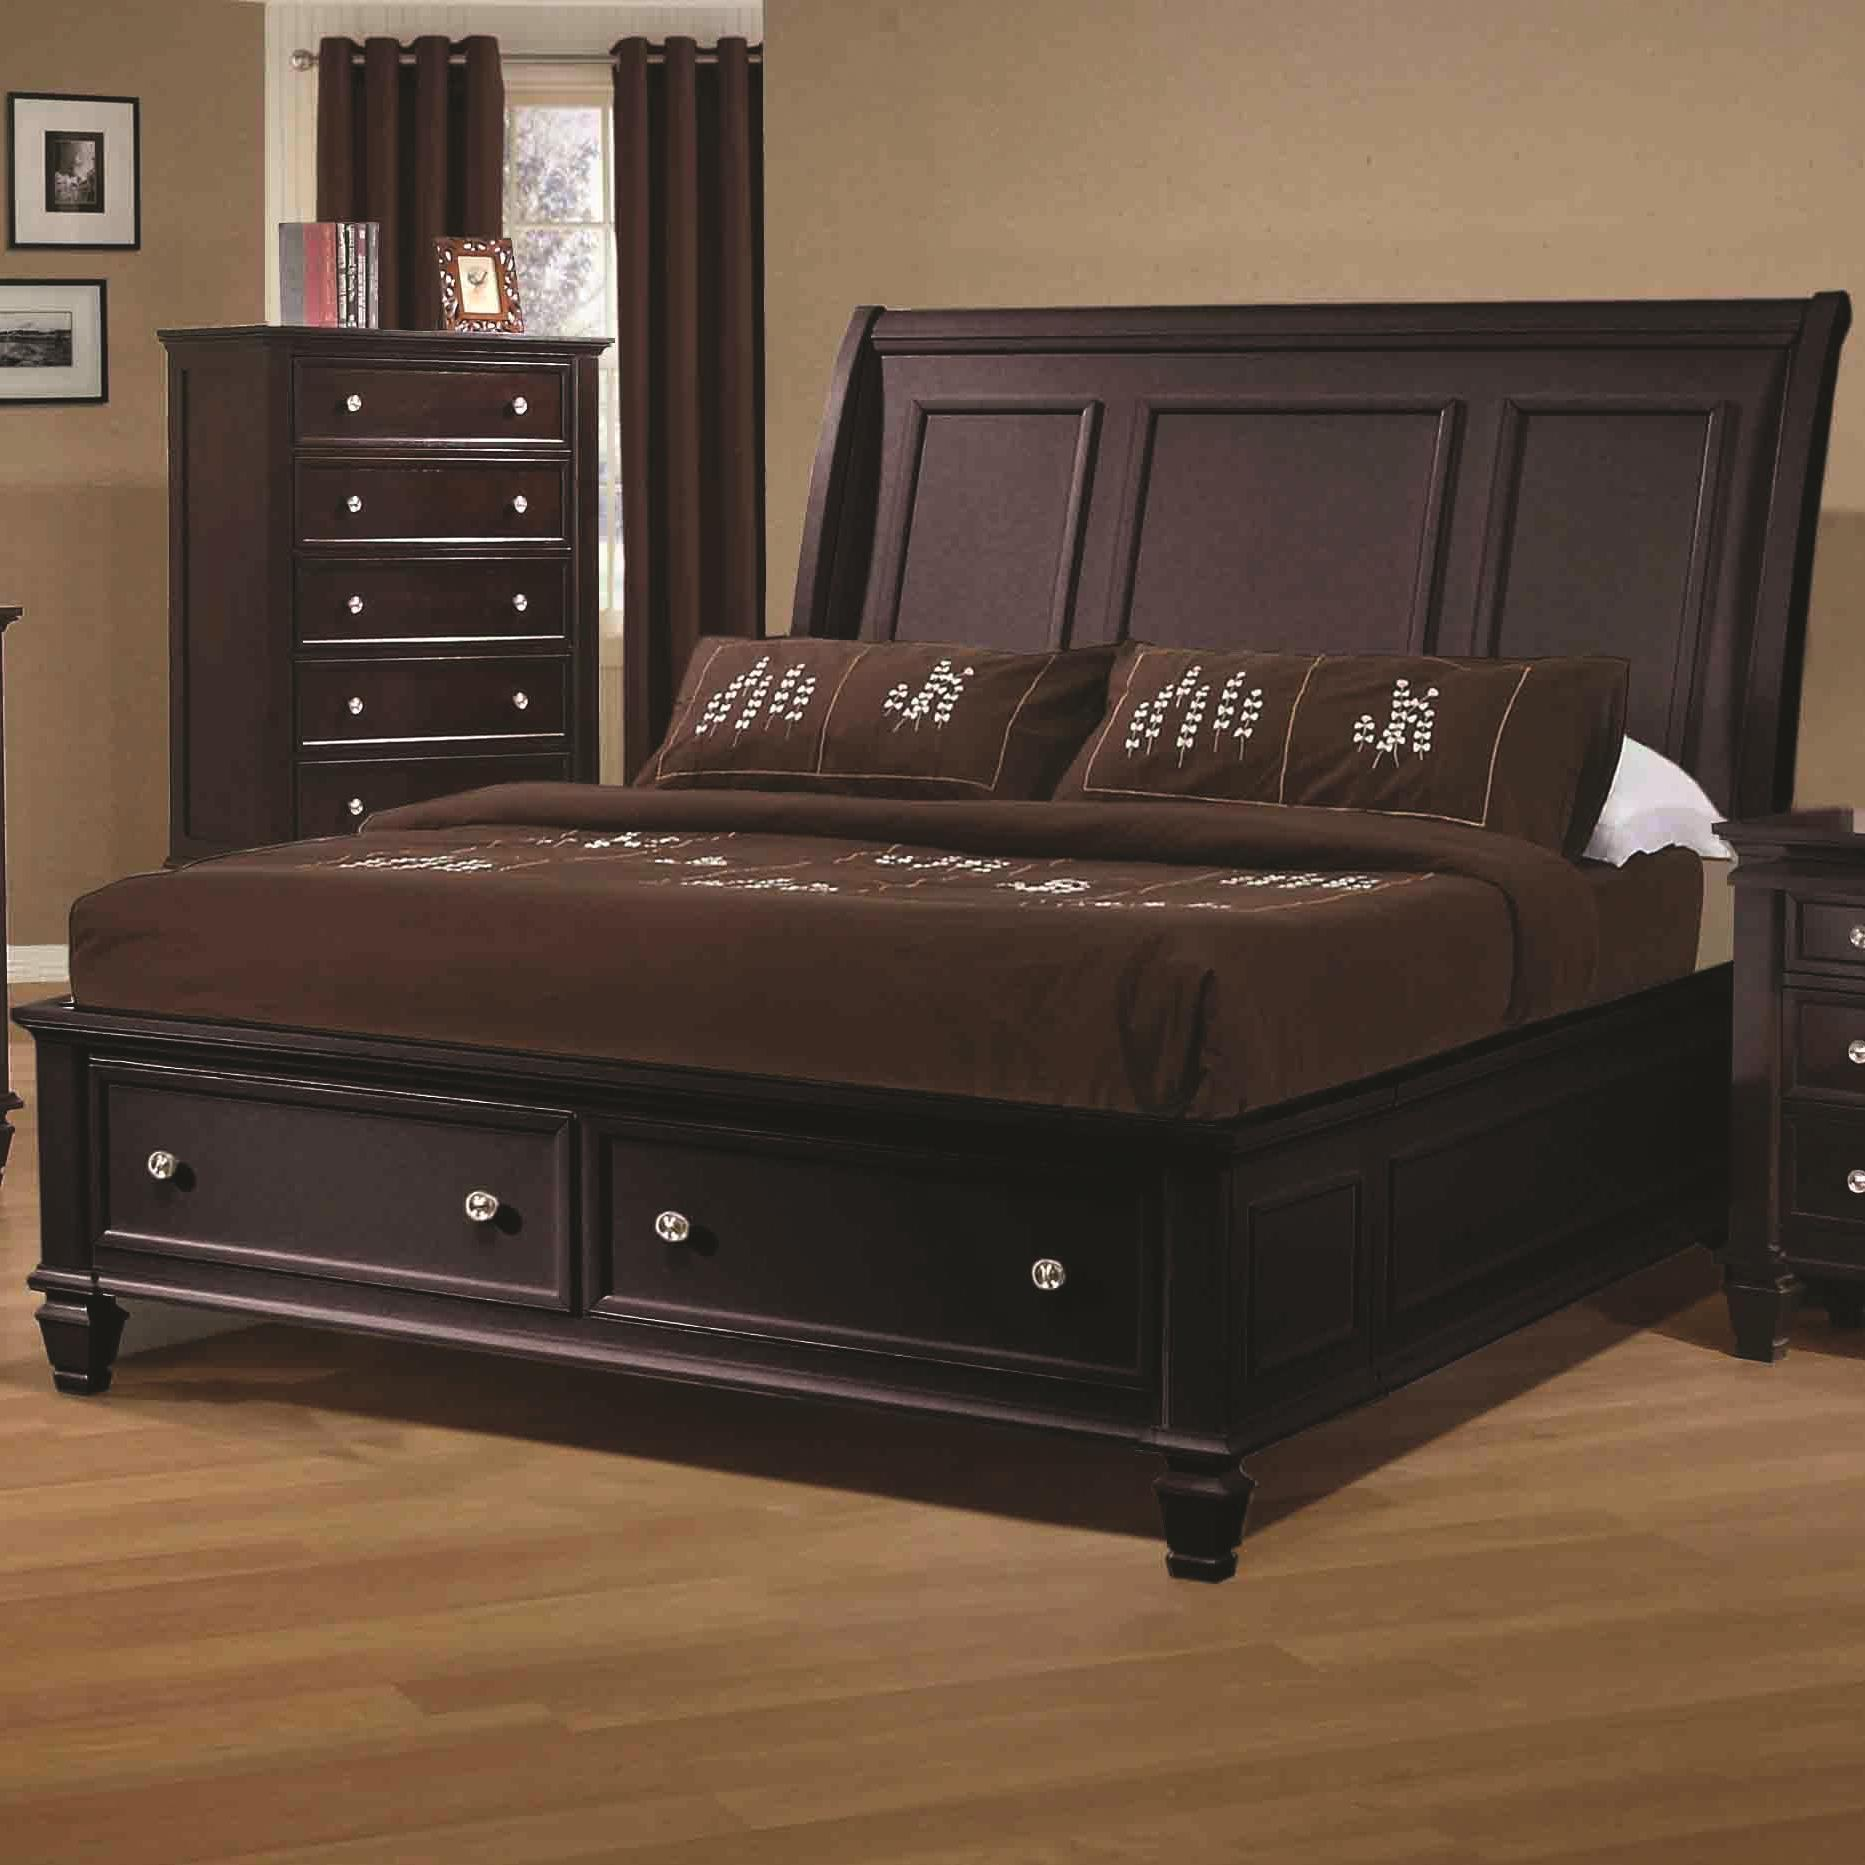 Coaster Sandy Beach King Sleigh Bed - Item Number: 201990KE